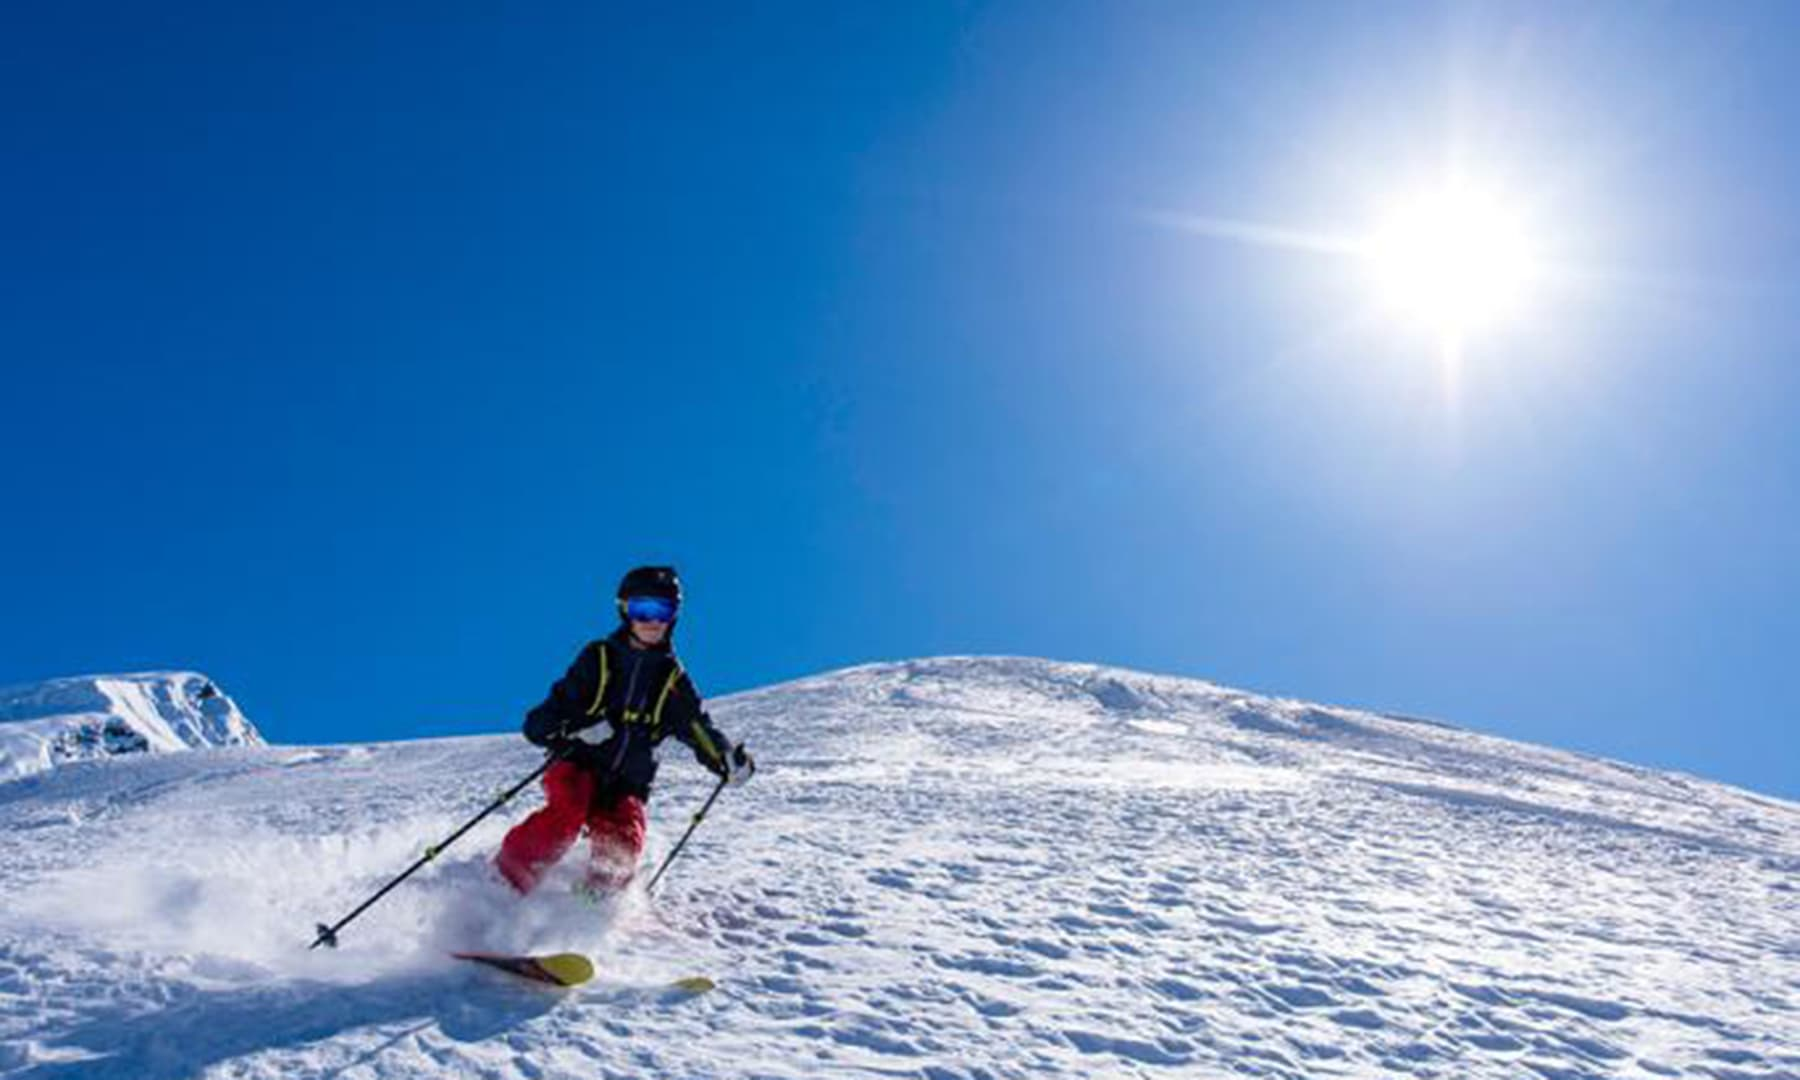 Skiing on the fresh powder on the mountains in Shogran. — Photo courtesy ISPR